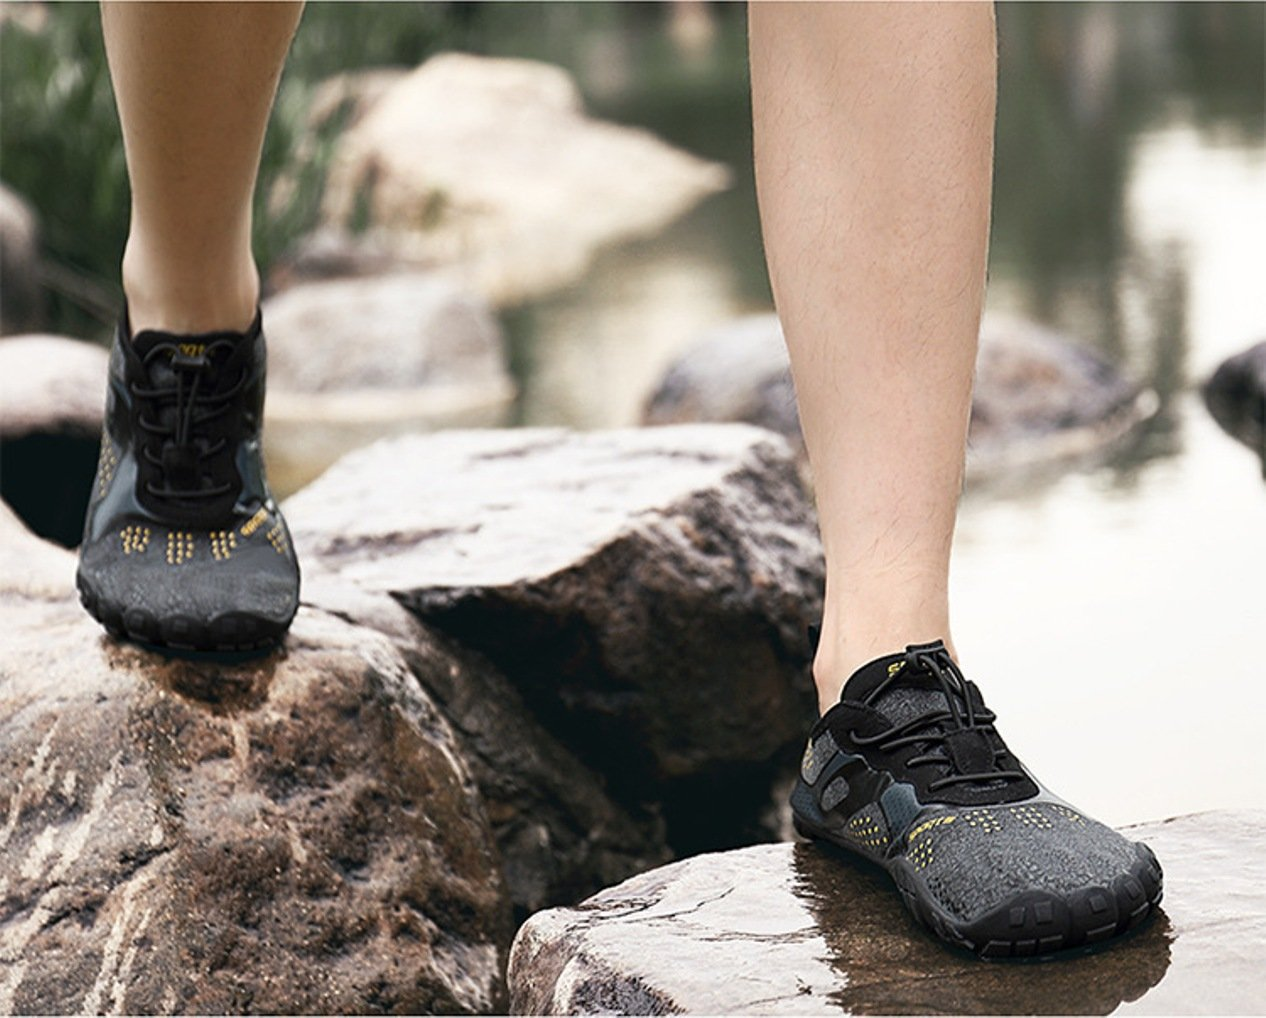 INFMETRY Men Women Wide Men/5.5 Boating Water Shoes B07D3W9G5V 4.5 Men/5.5 Wide Women|Black 1470d8